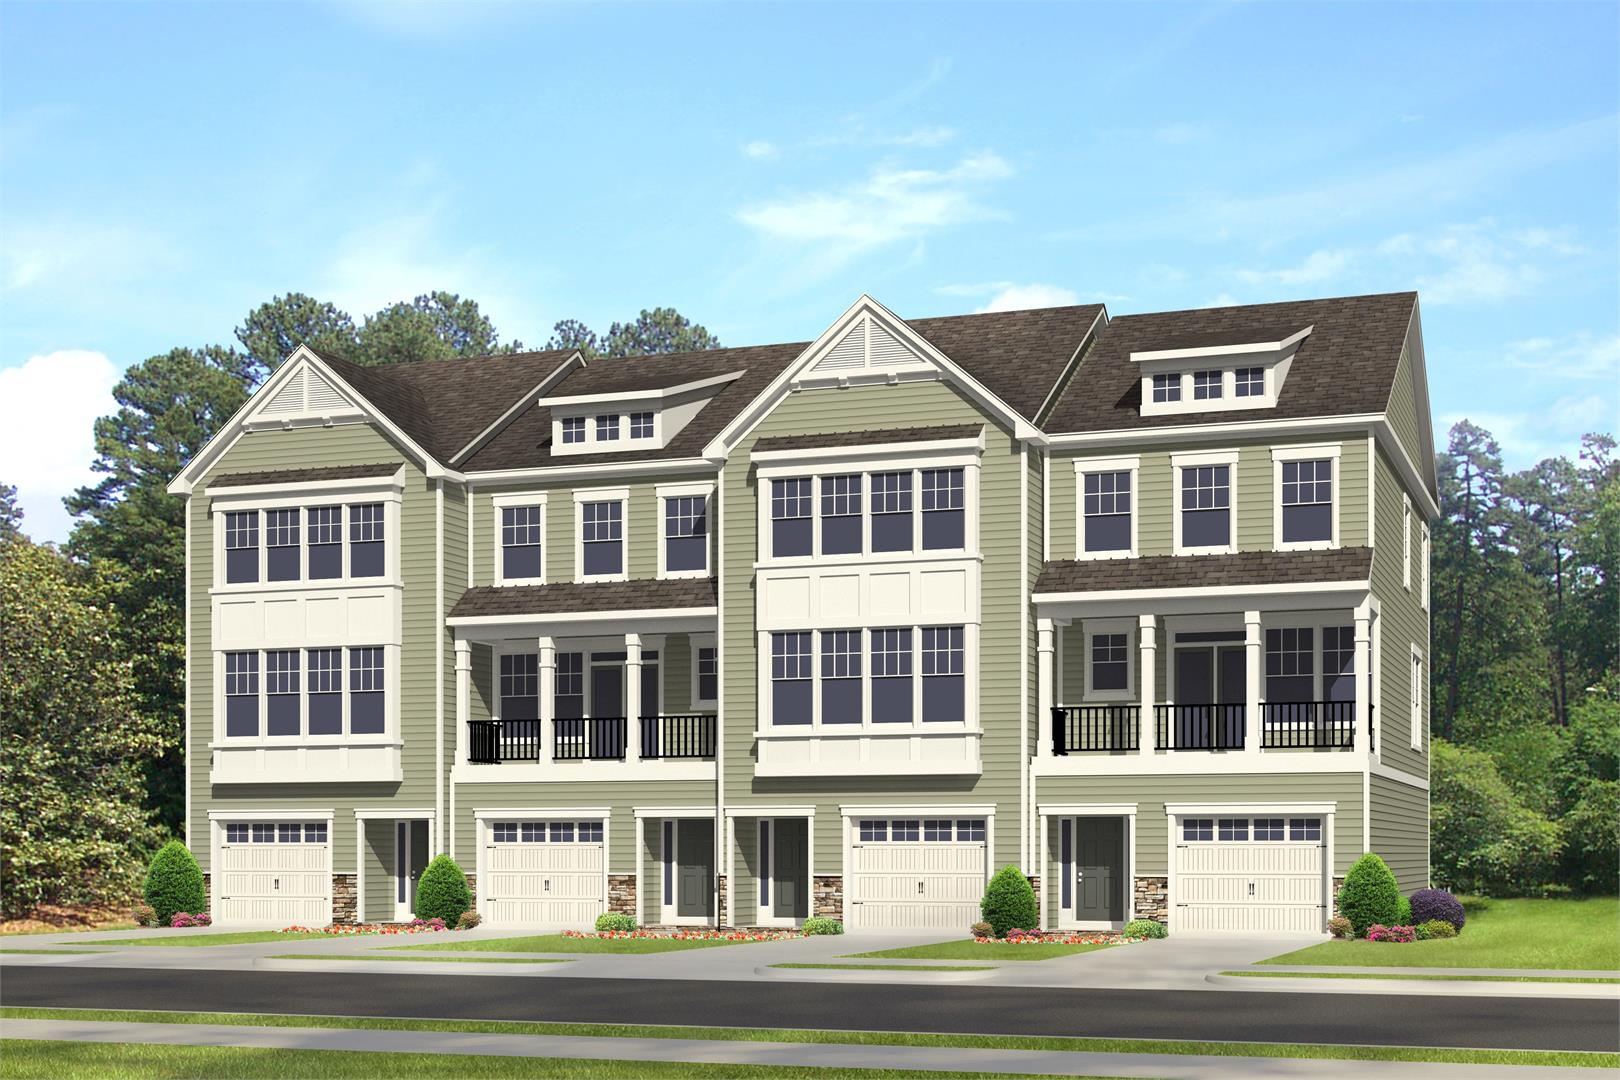 Ridgefield Green Townhomes Plans Prices Availability